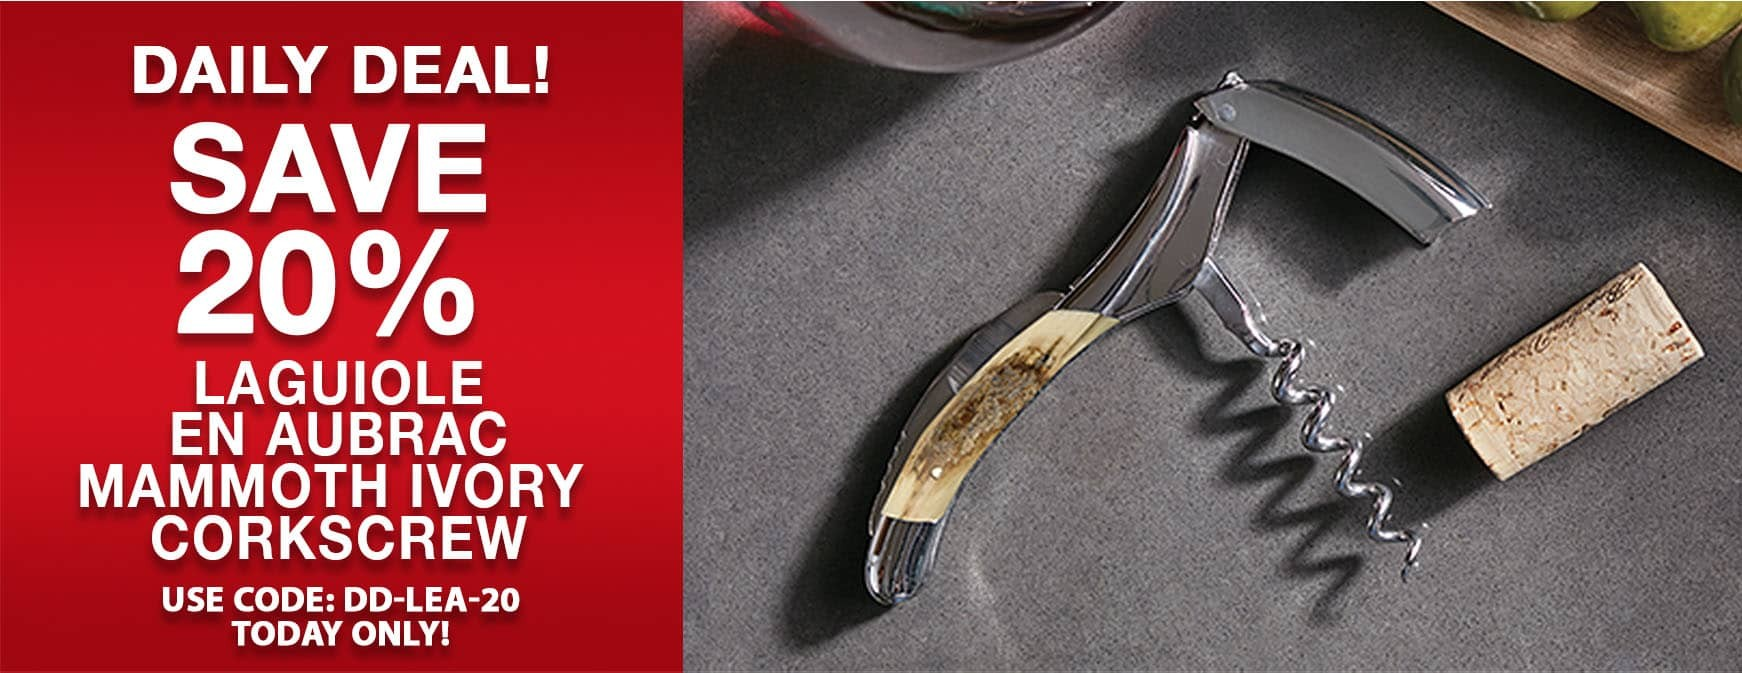 Save 20% on Laguiole En Aubrac Mammoth Ivory Corkscrew. Use code DD-LEA-20 today only!